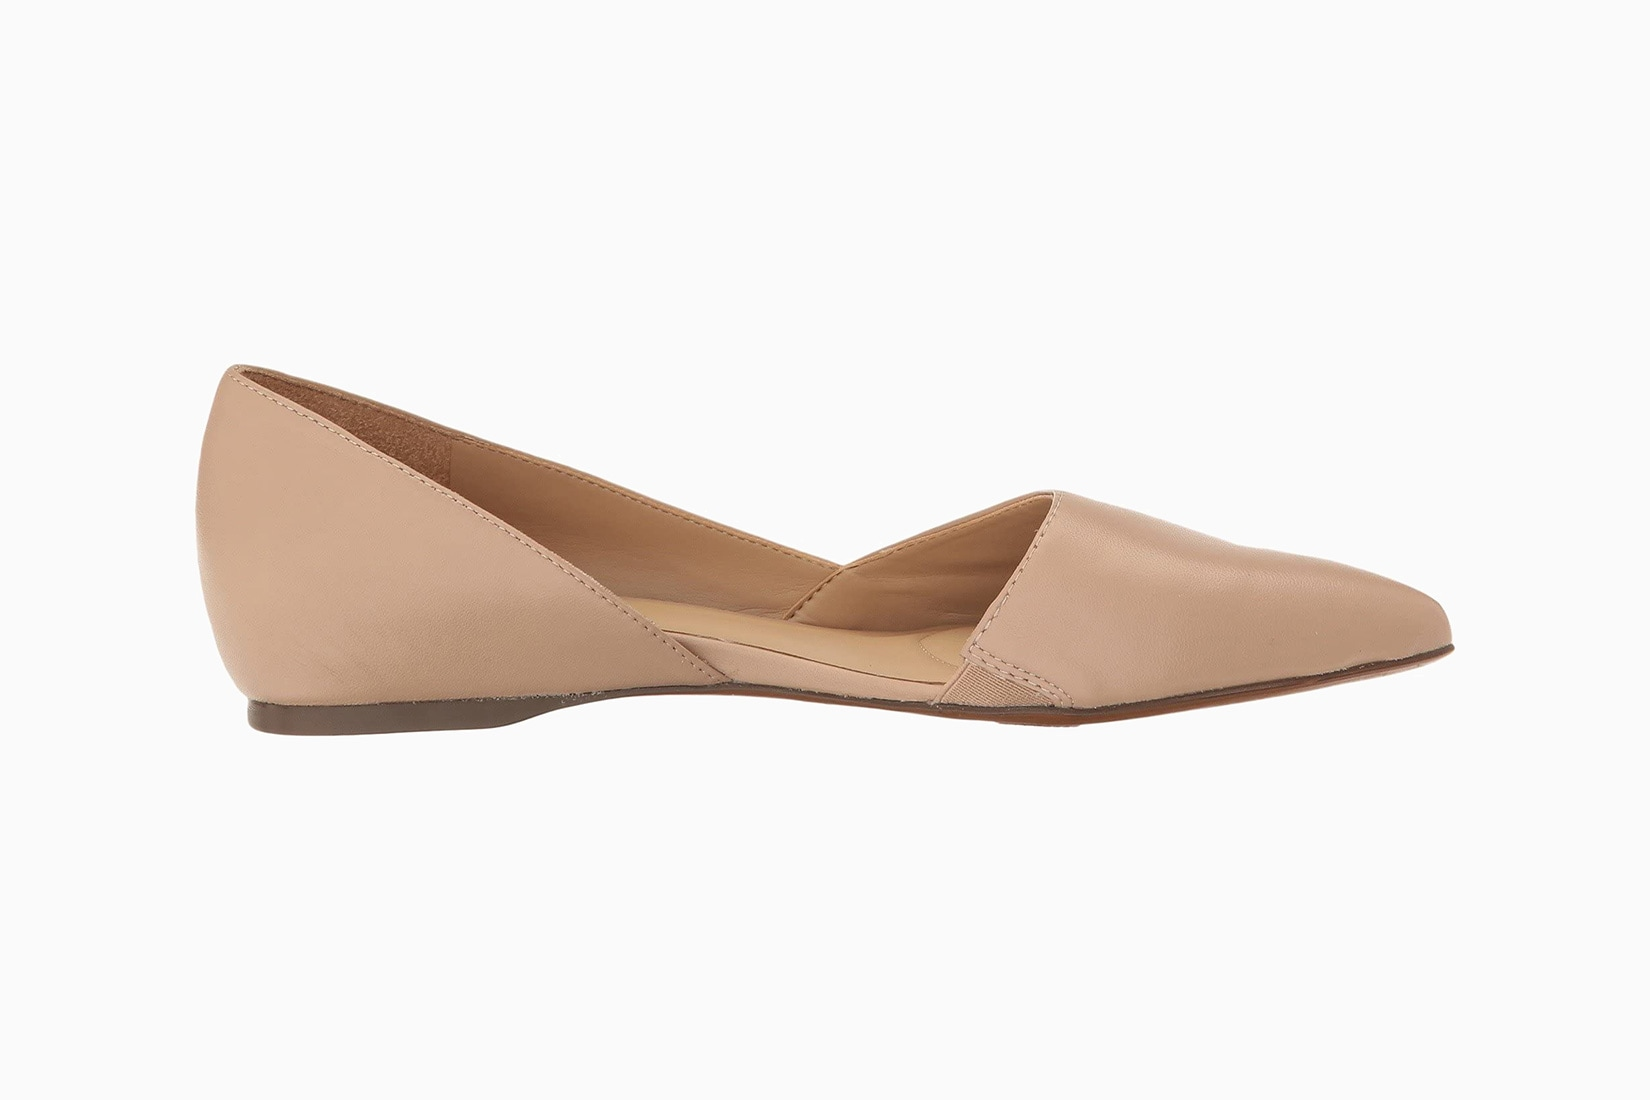 most comfortable flats women breathable naturalizer review - Luxe Digital